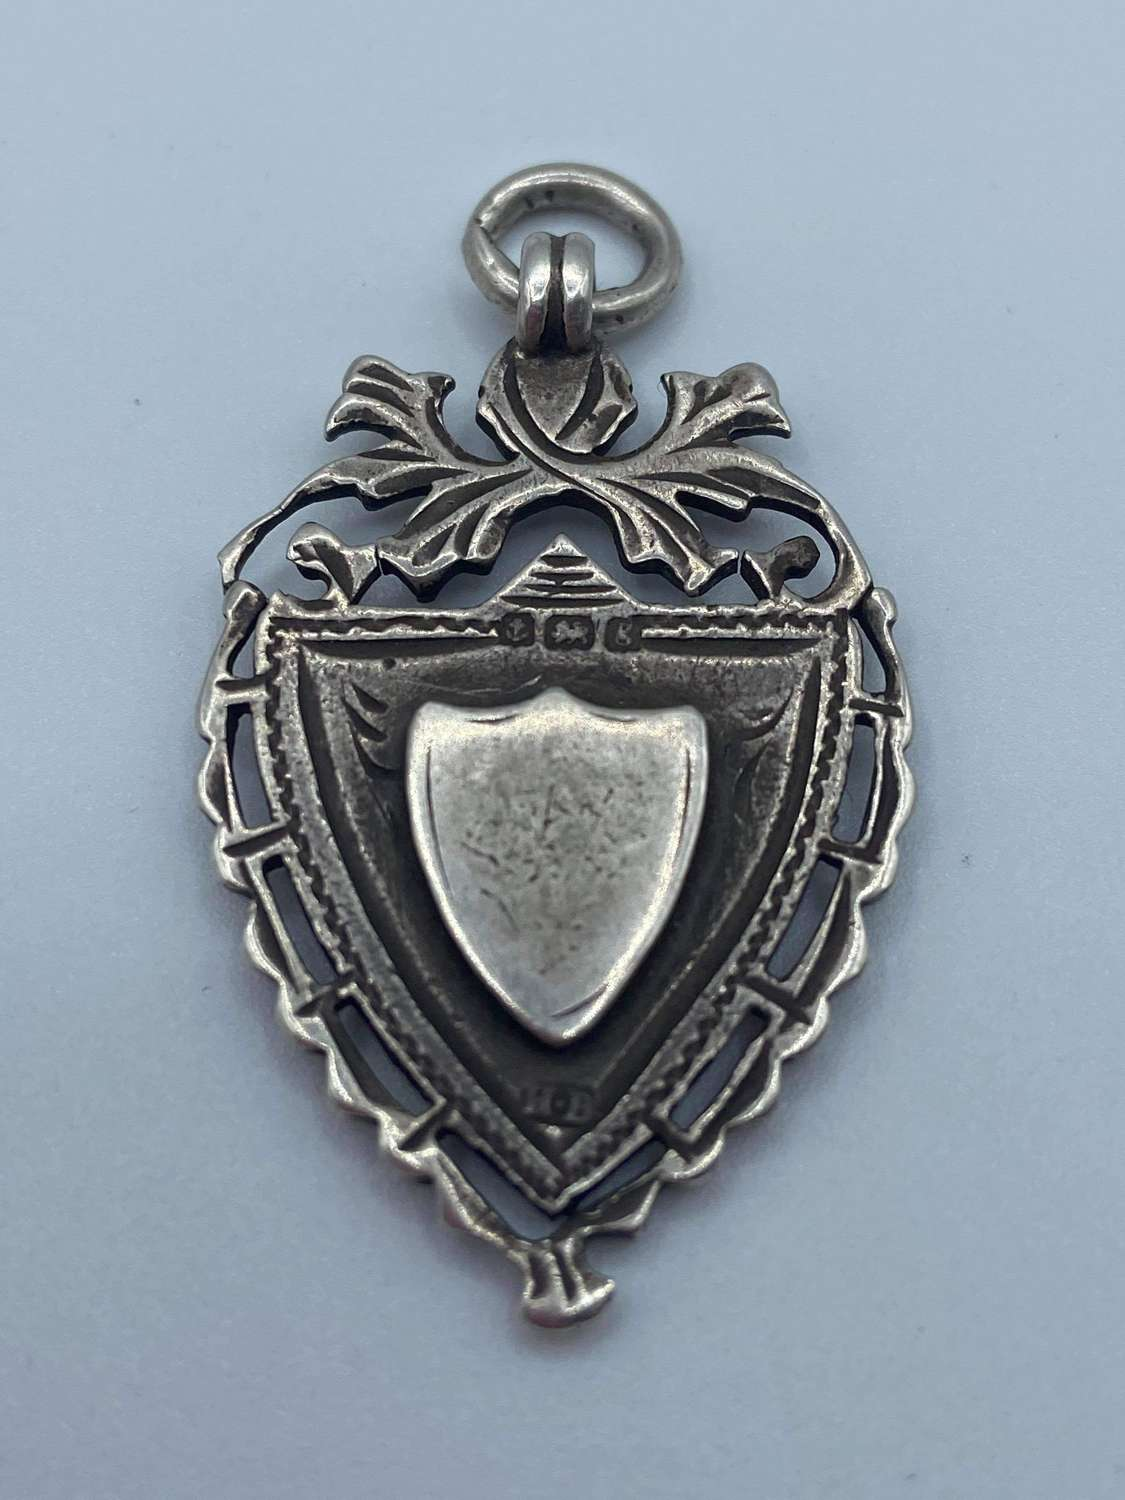 Antique Silver Hallmarked Birmingham 1906 H.B Double Sided Watch Fob